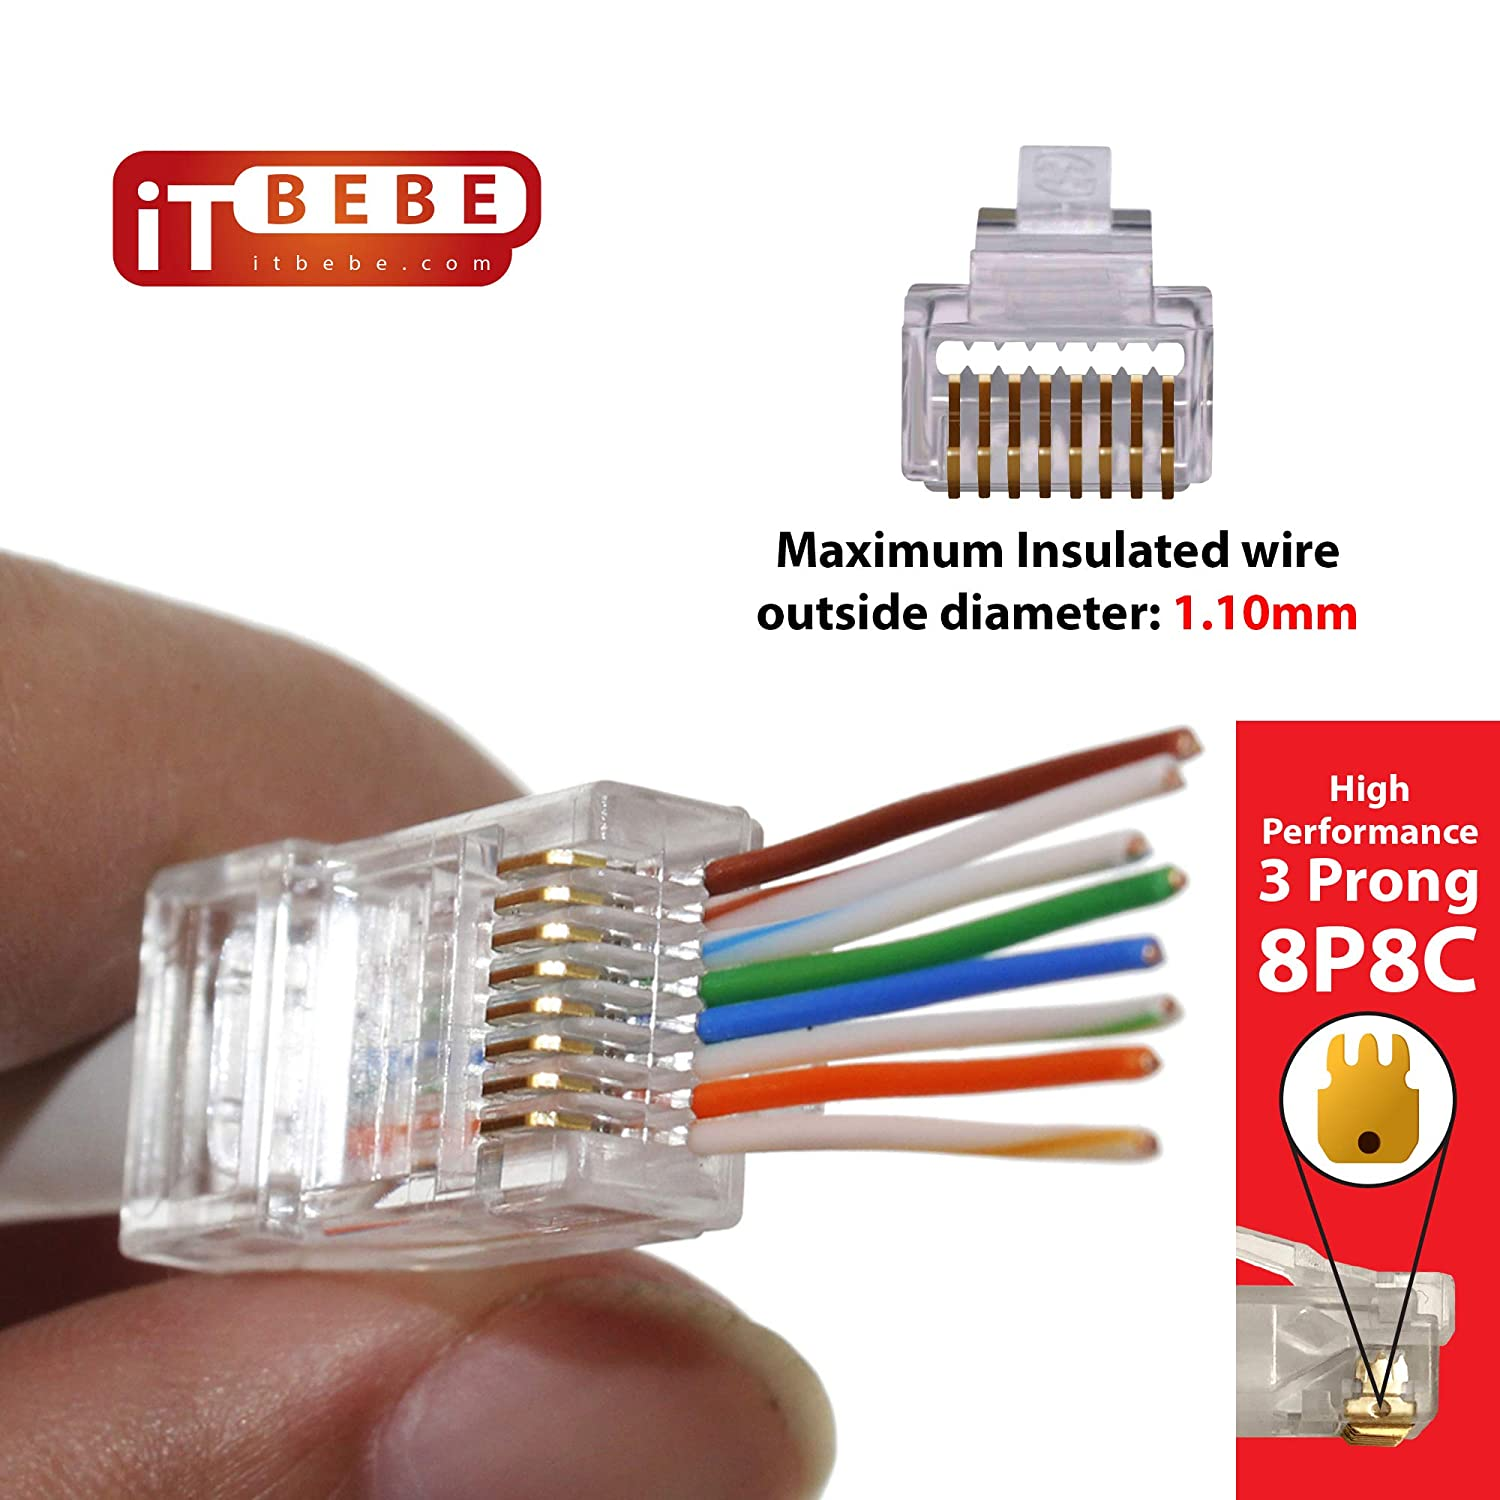 ITBEBE 300 Pieces RJ45 Cat6 Pass Through Connectors for 24 AWG Cables 300 Cat6 Passthrough Connector Ends Jack for Cat6 Ethernet Patch Cord